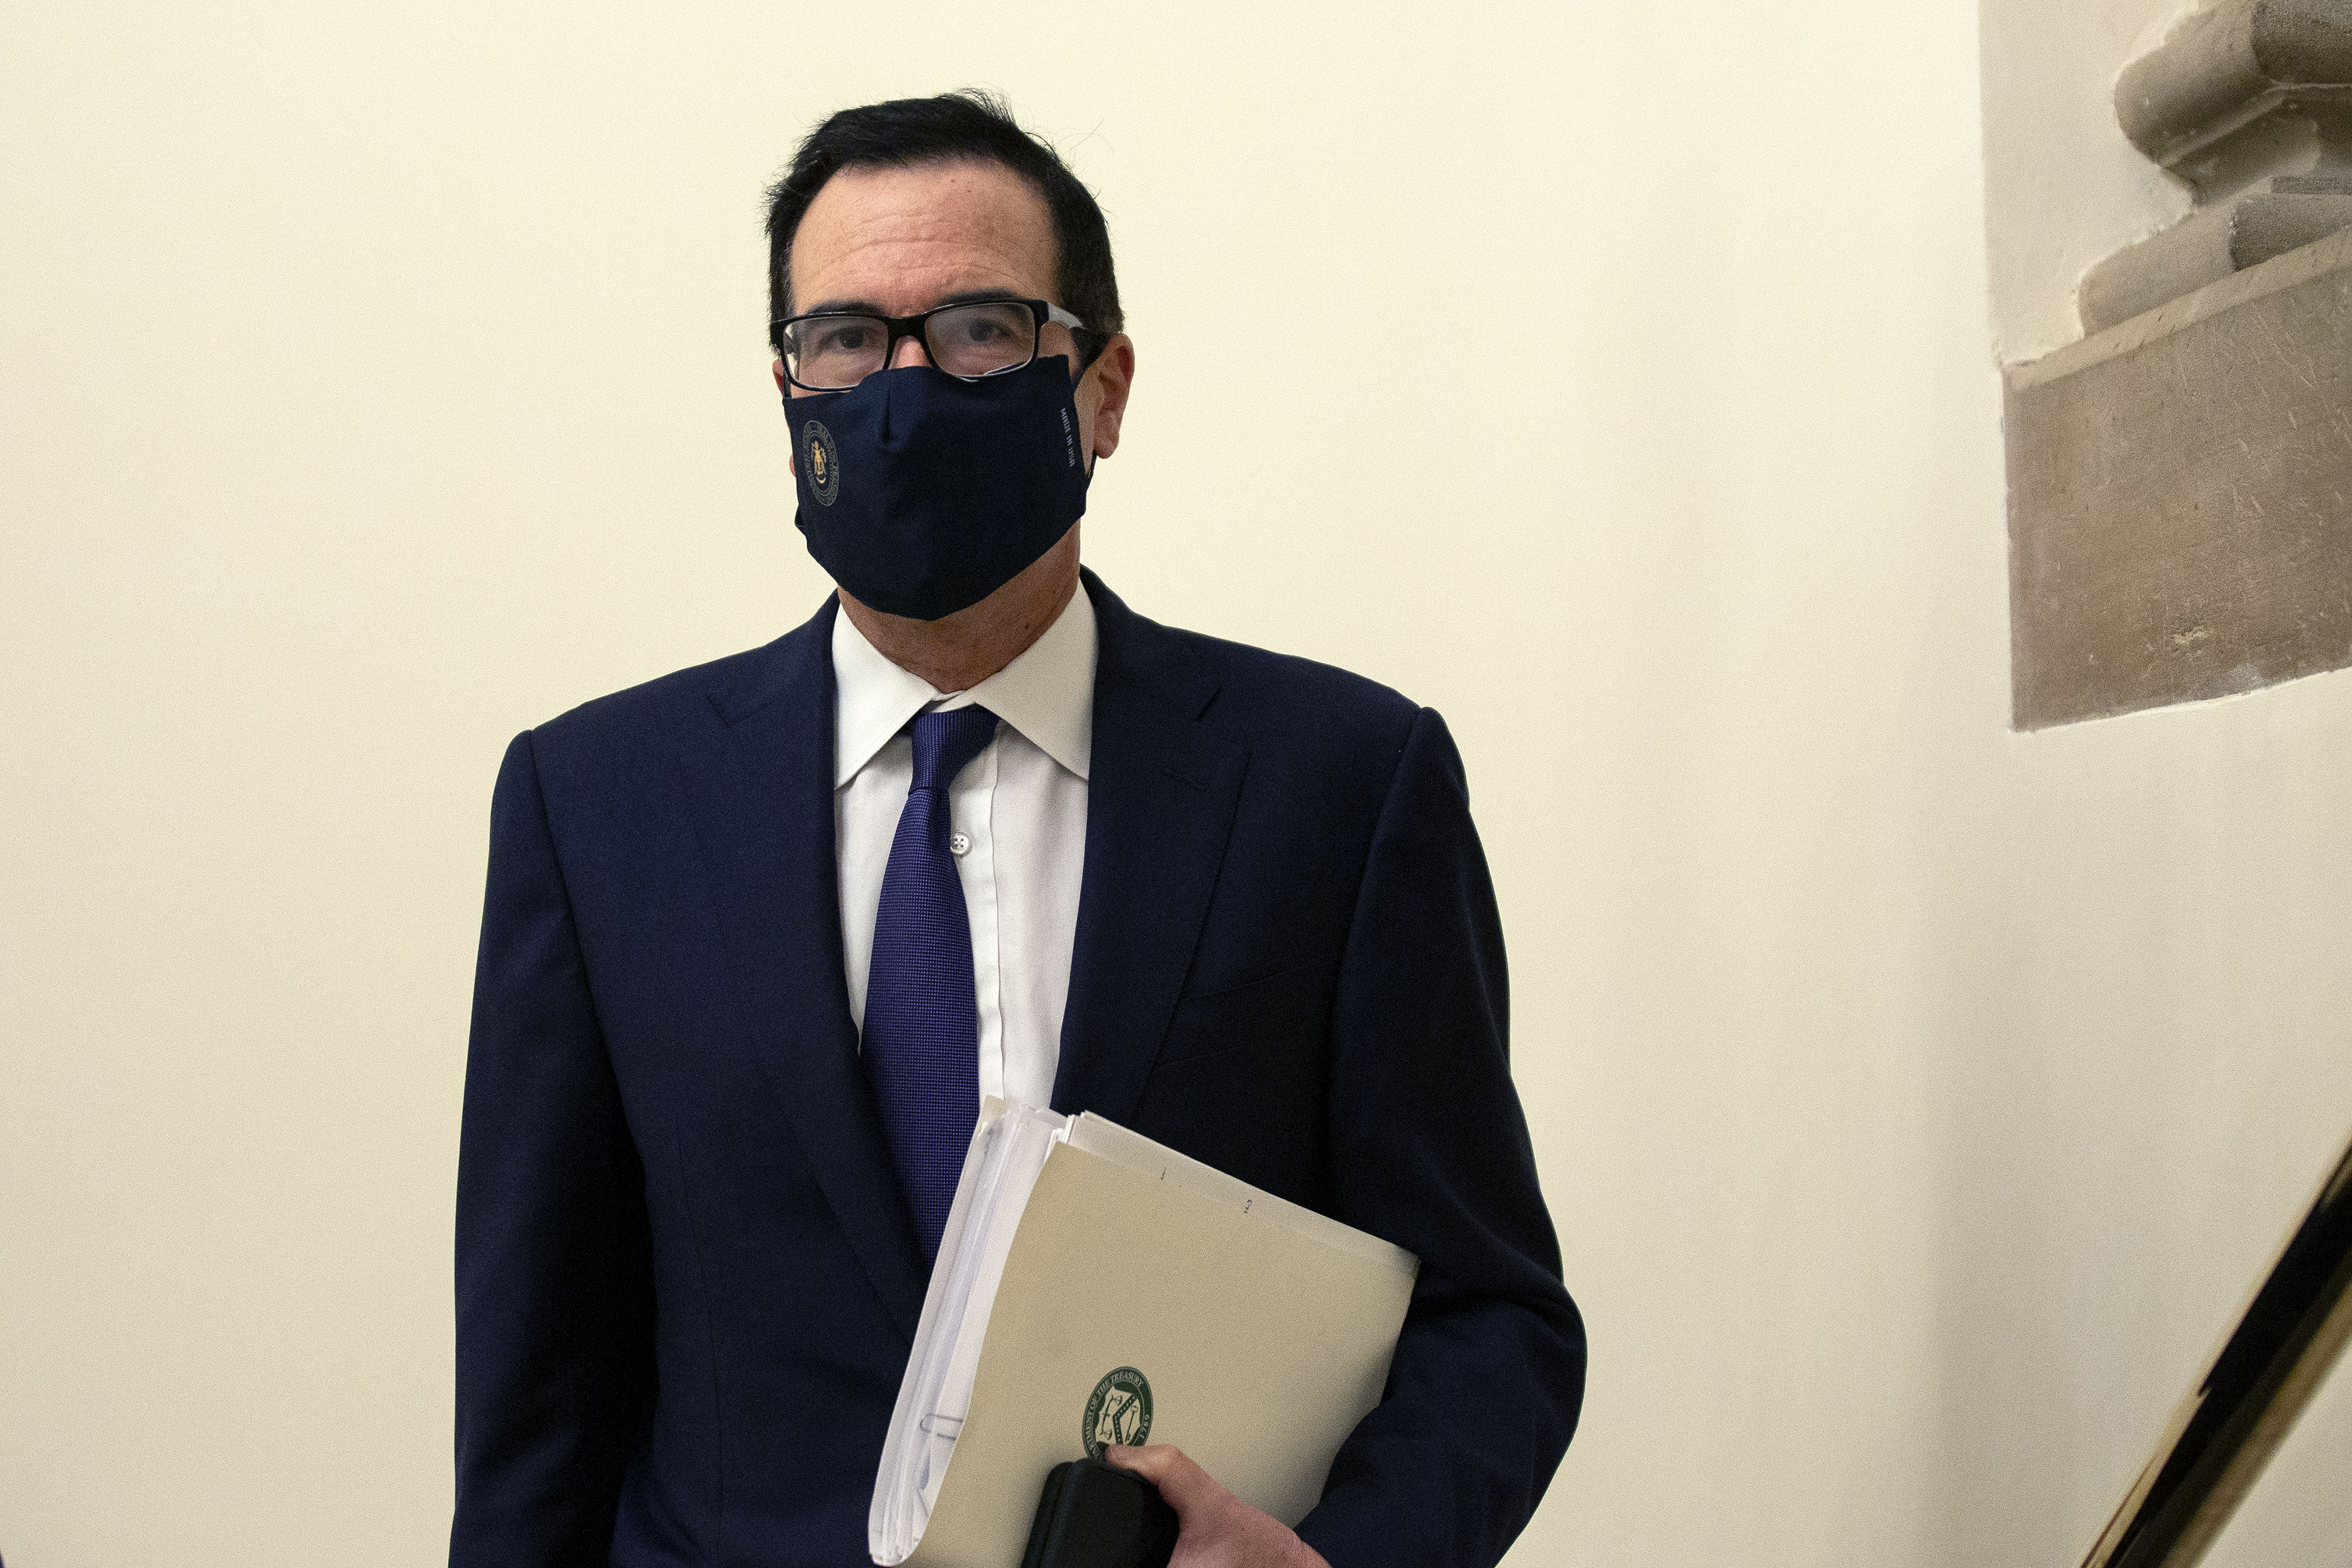 Steve Mnuchin, Treasury secretary, arrives for a meeting at the Capitol on July 28, 2020.